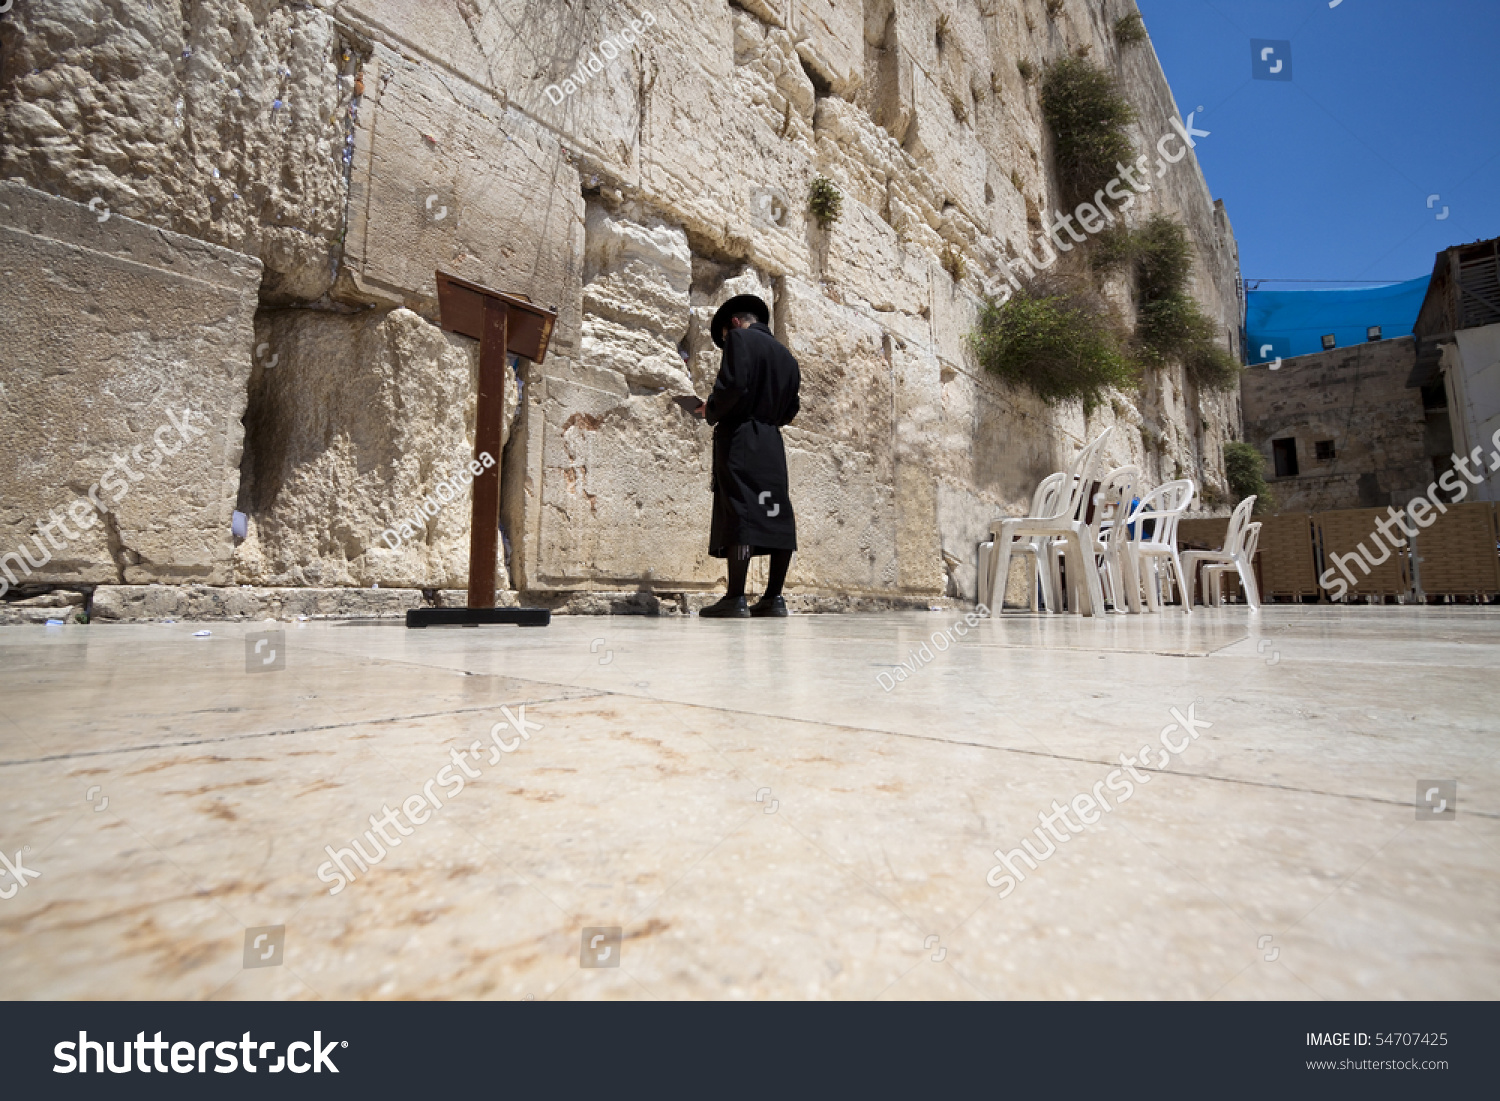 catholic single men in jerusalem With free membership you can create your own profile, share photos and videos, contact and flirt with other jerusalem singles, visit our live chat rooms and interest groups, use instant.